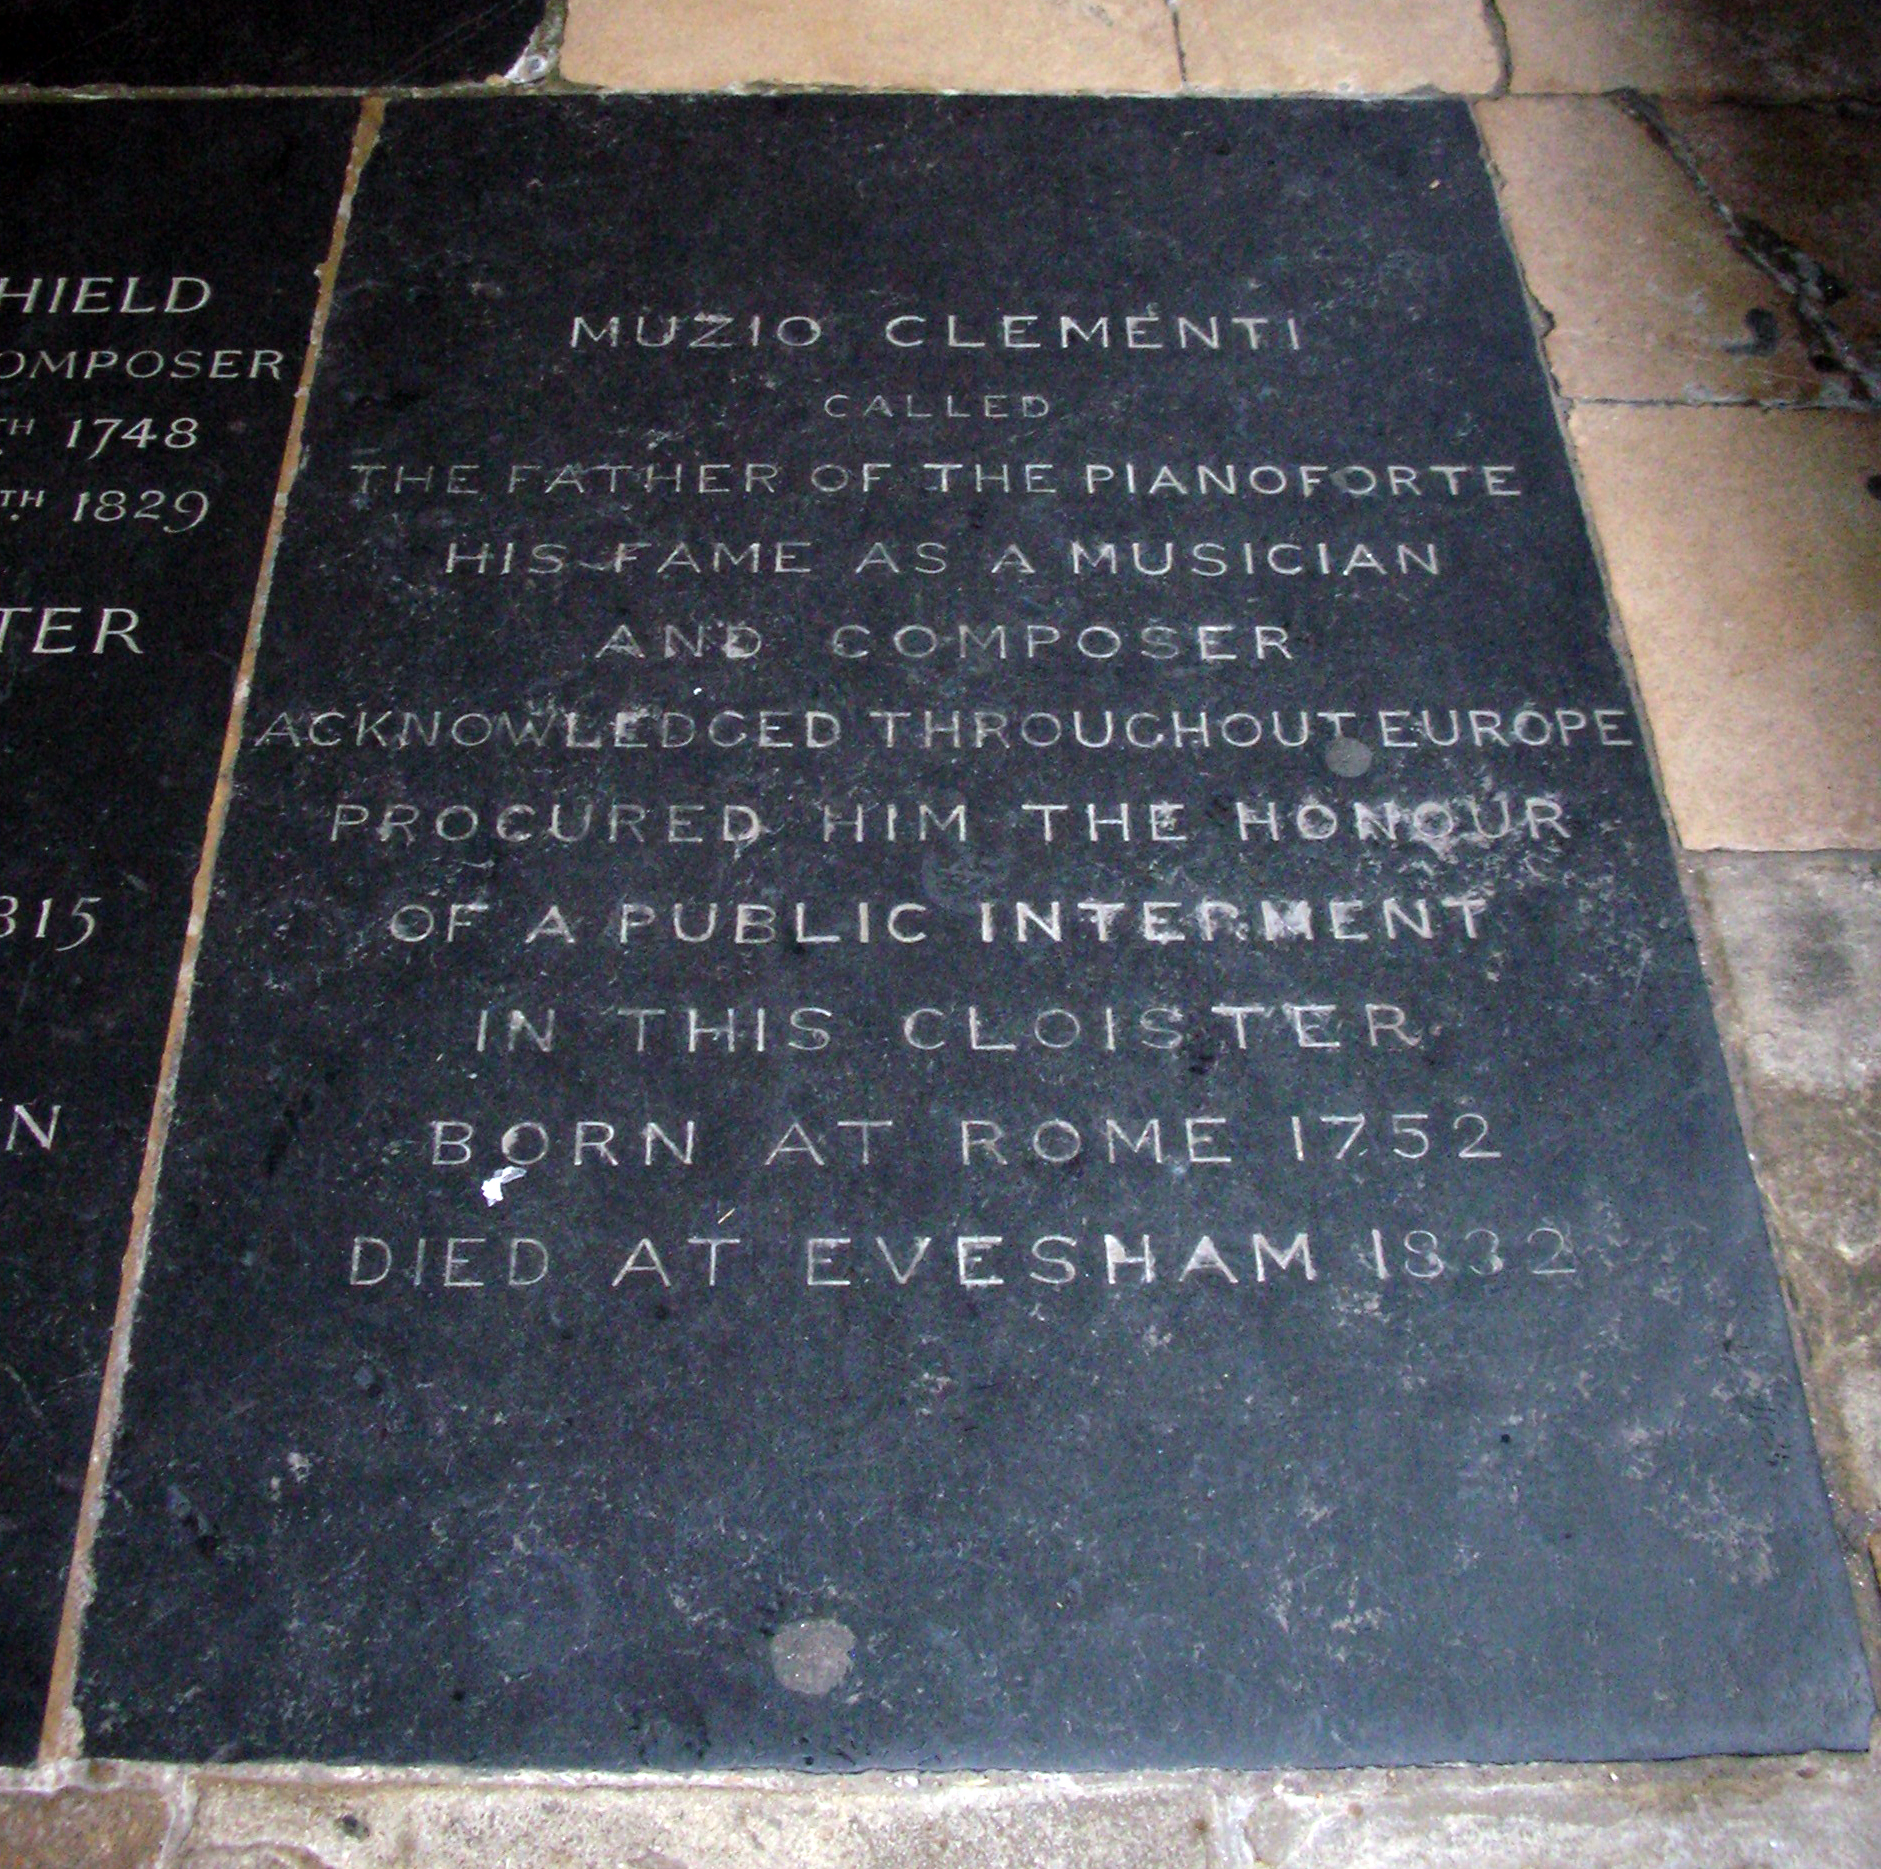 Burial stone in Westminster Abbey